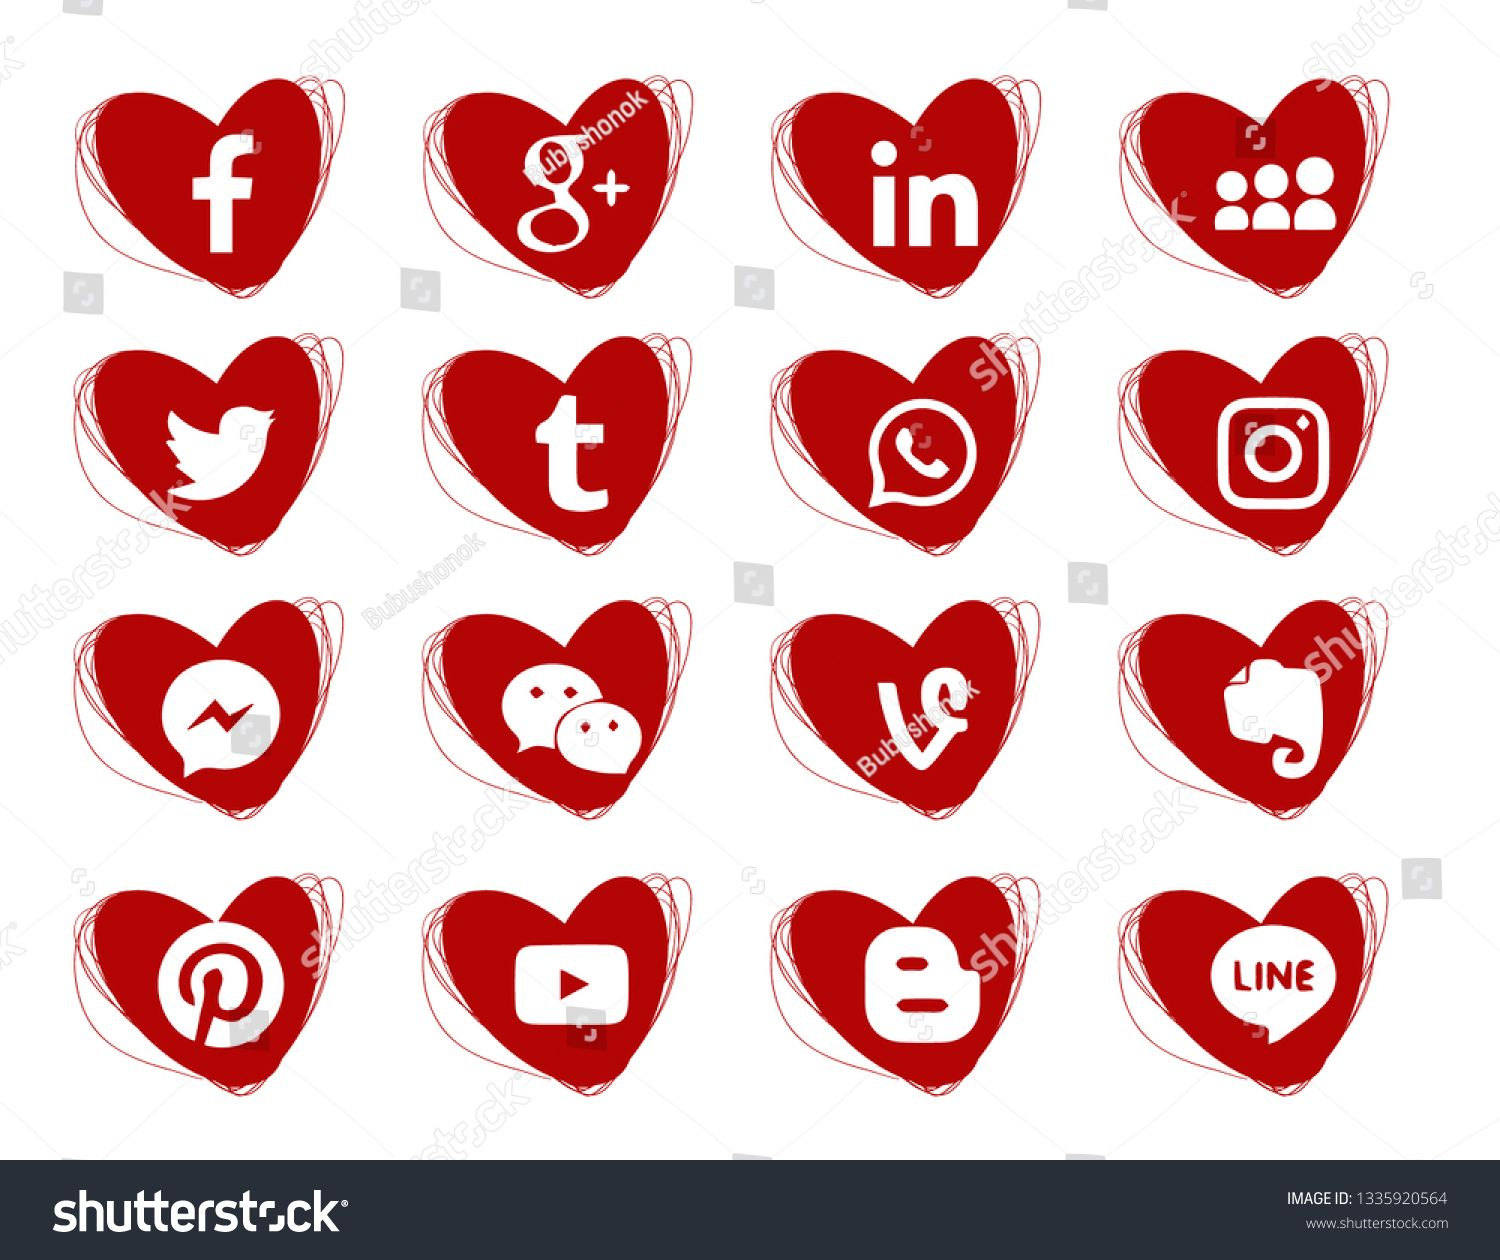 Hearts doodles icons. Red. Collection of popular social